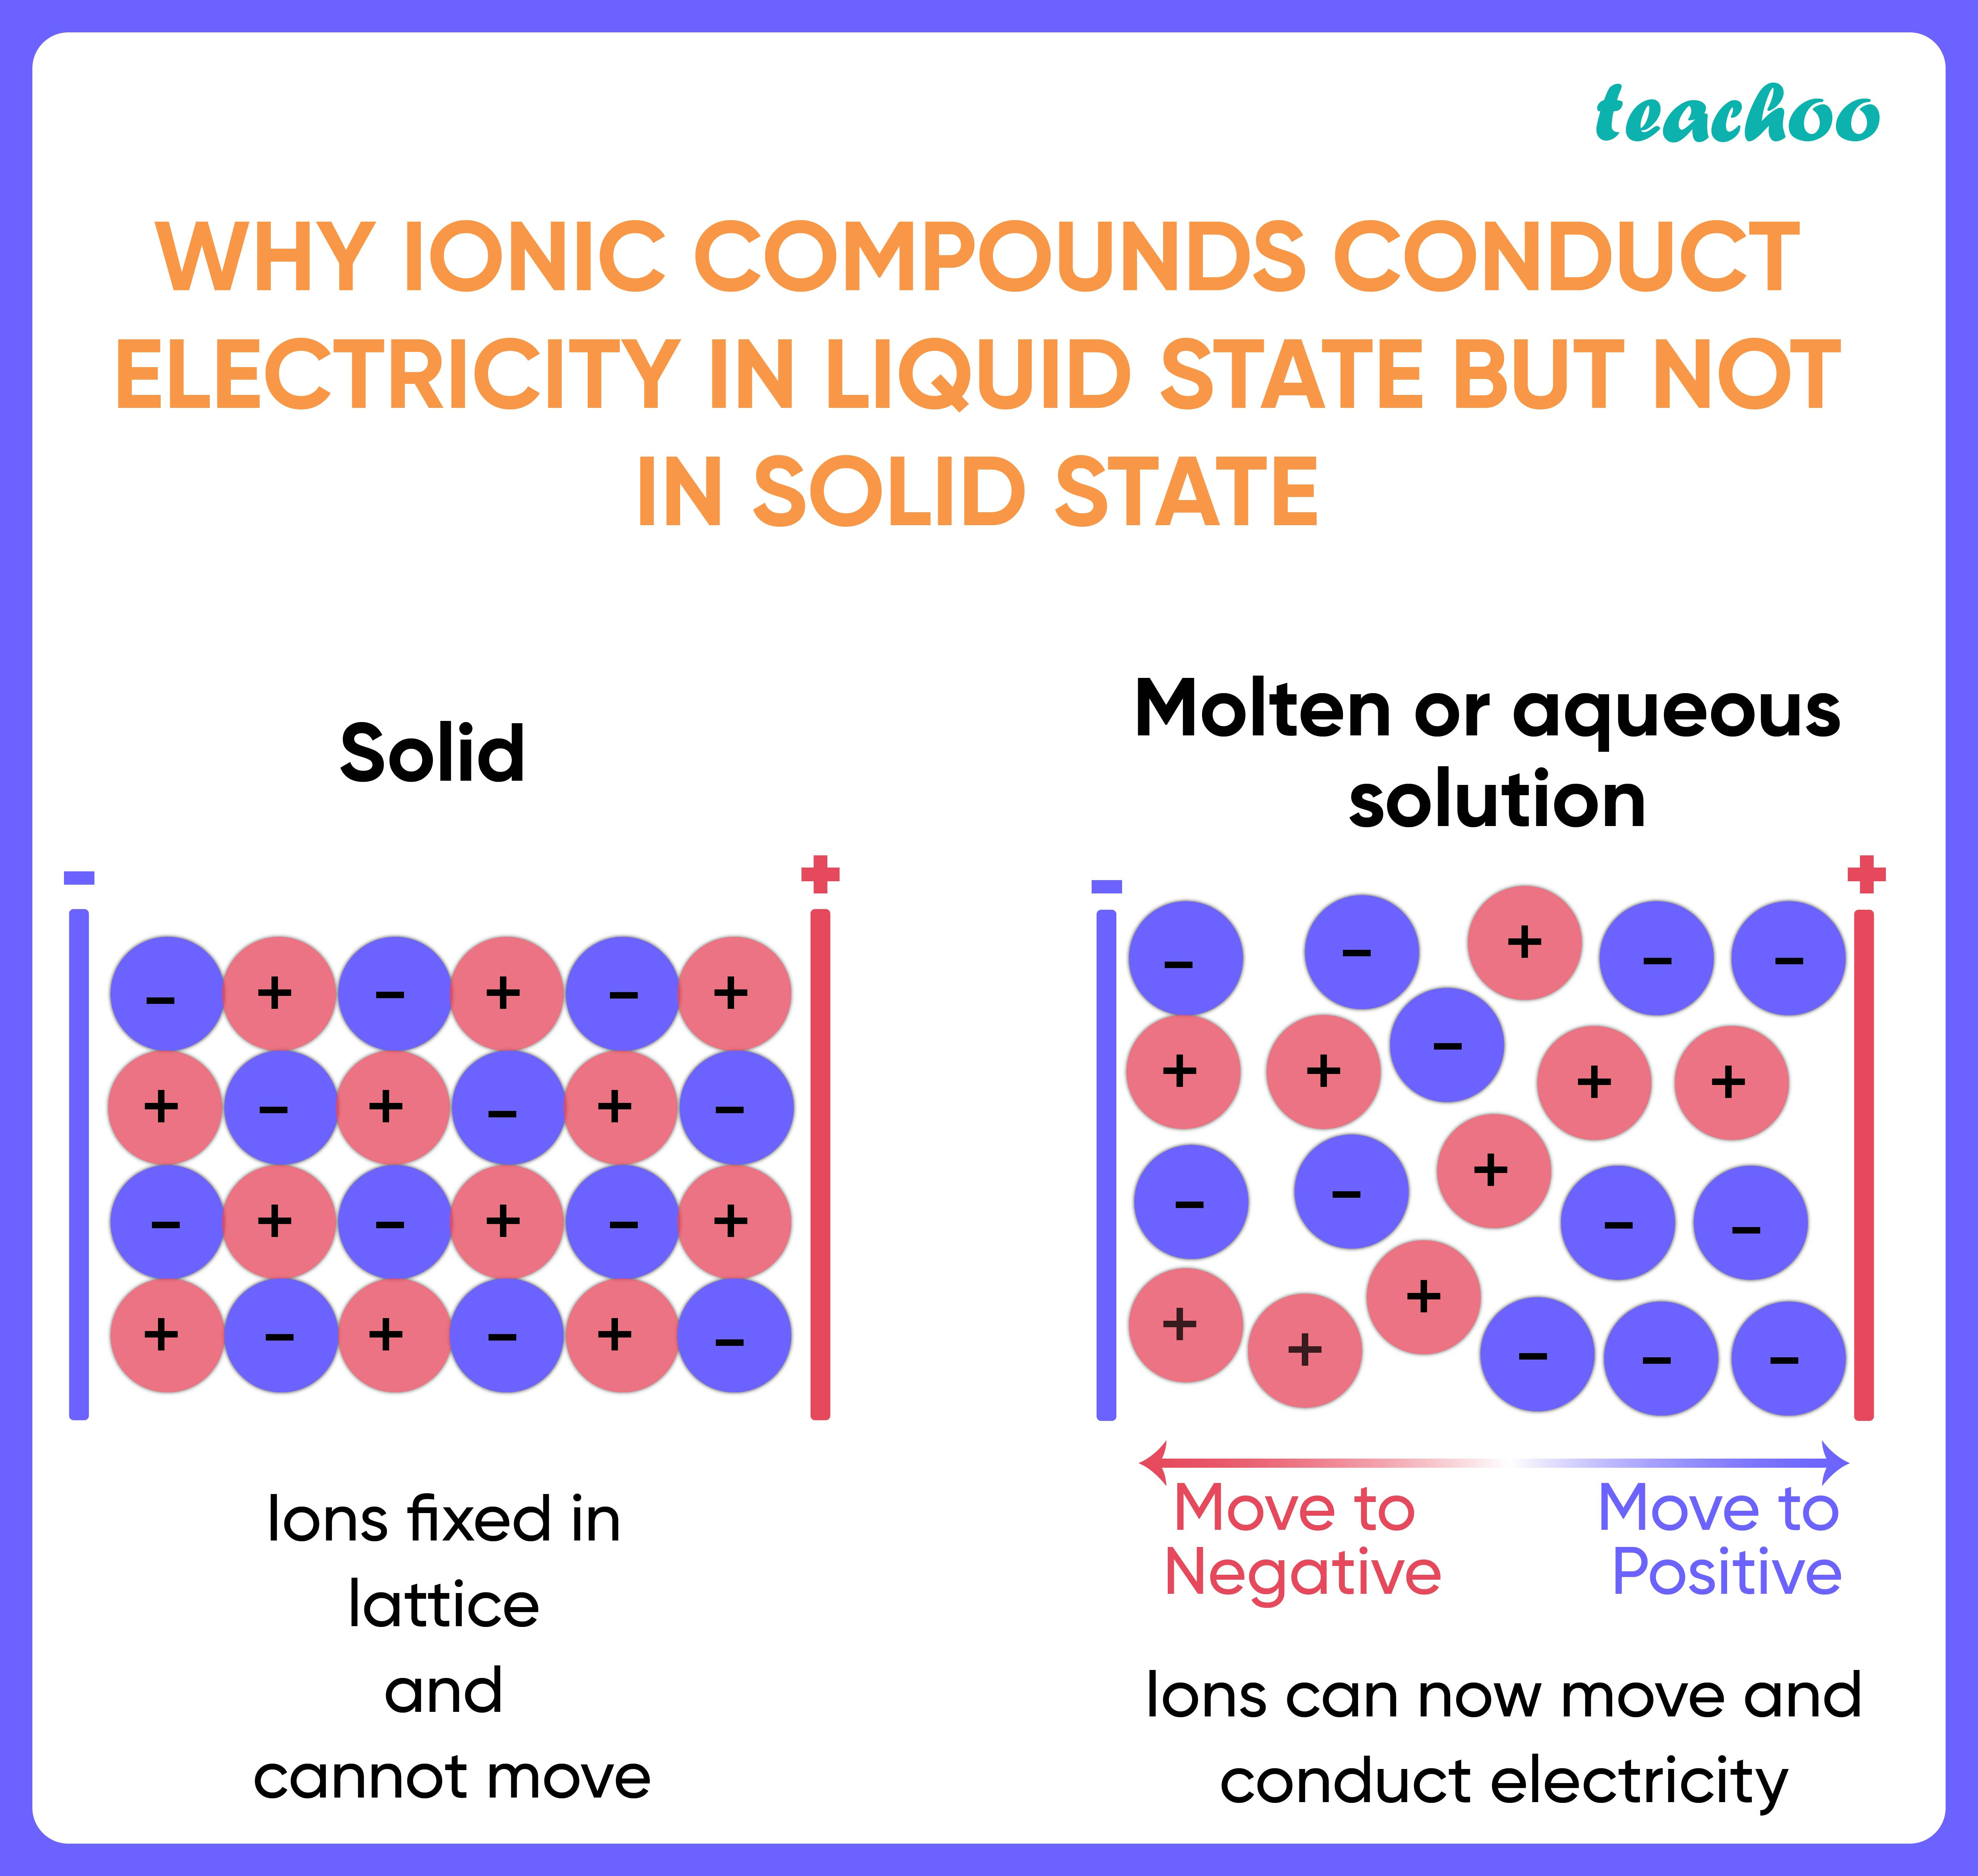 Why Ionic compounds conduct electricity in Liquid state but not in Solid state-01.jpg